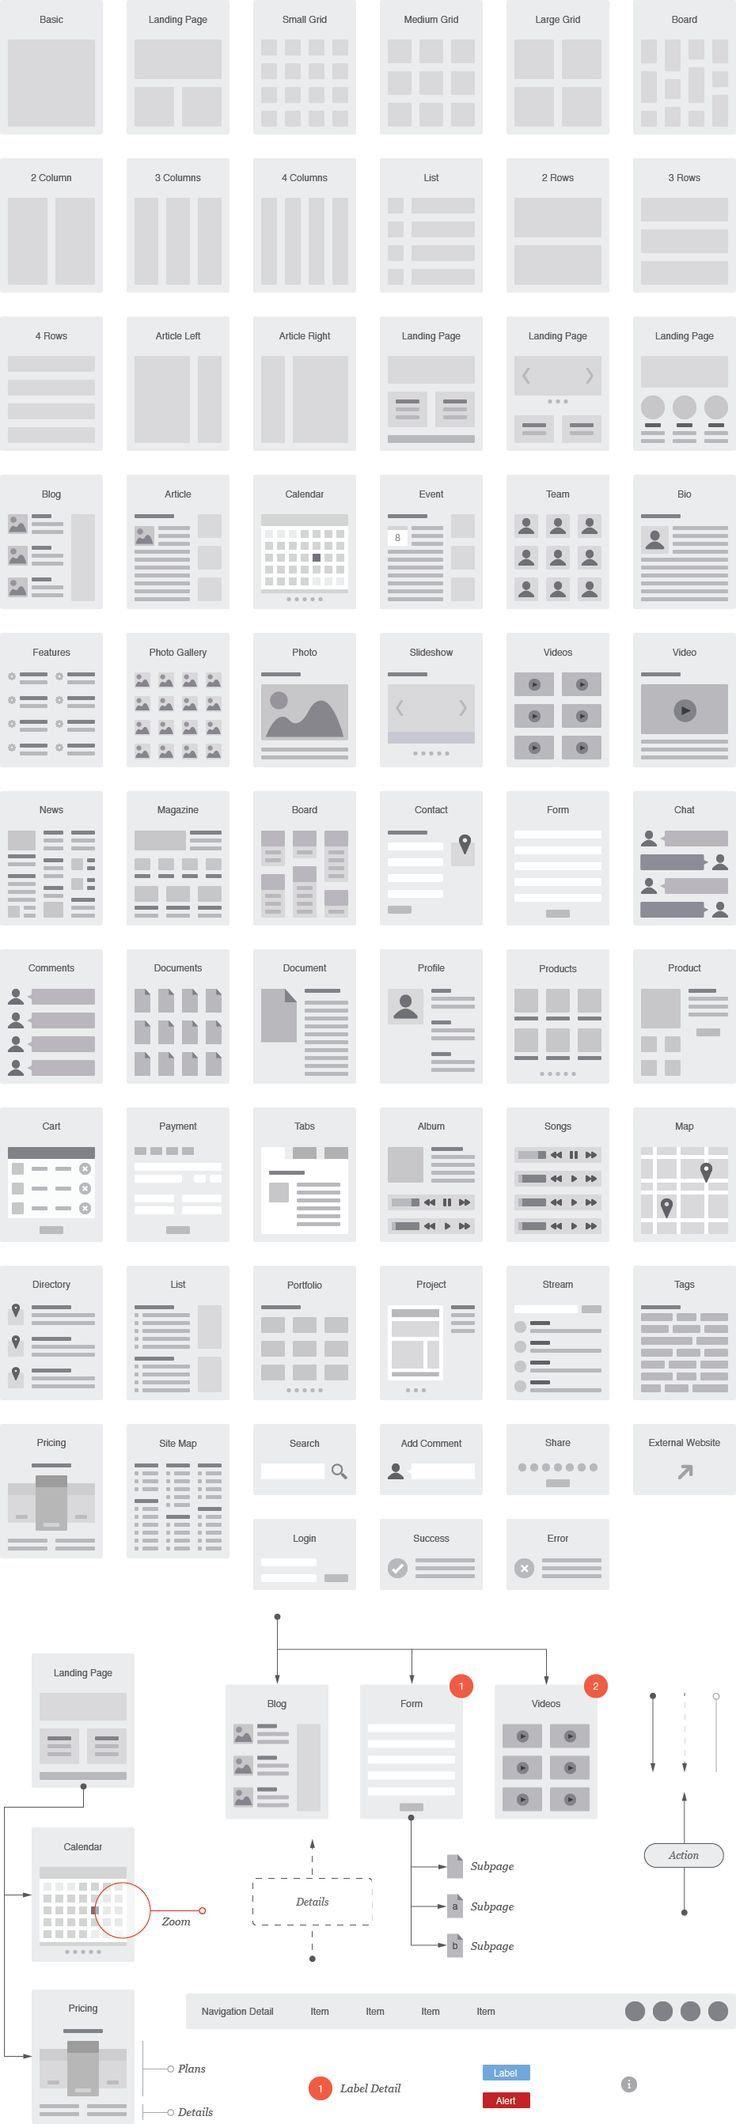 This shows several different examples of layouts and grids that can be used in laying out a website using wireframes.